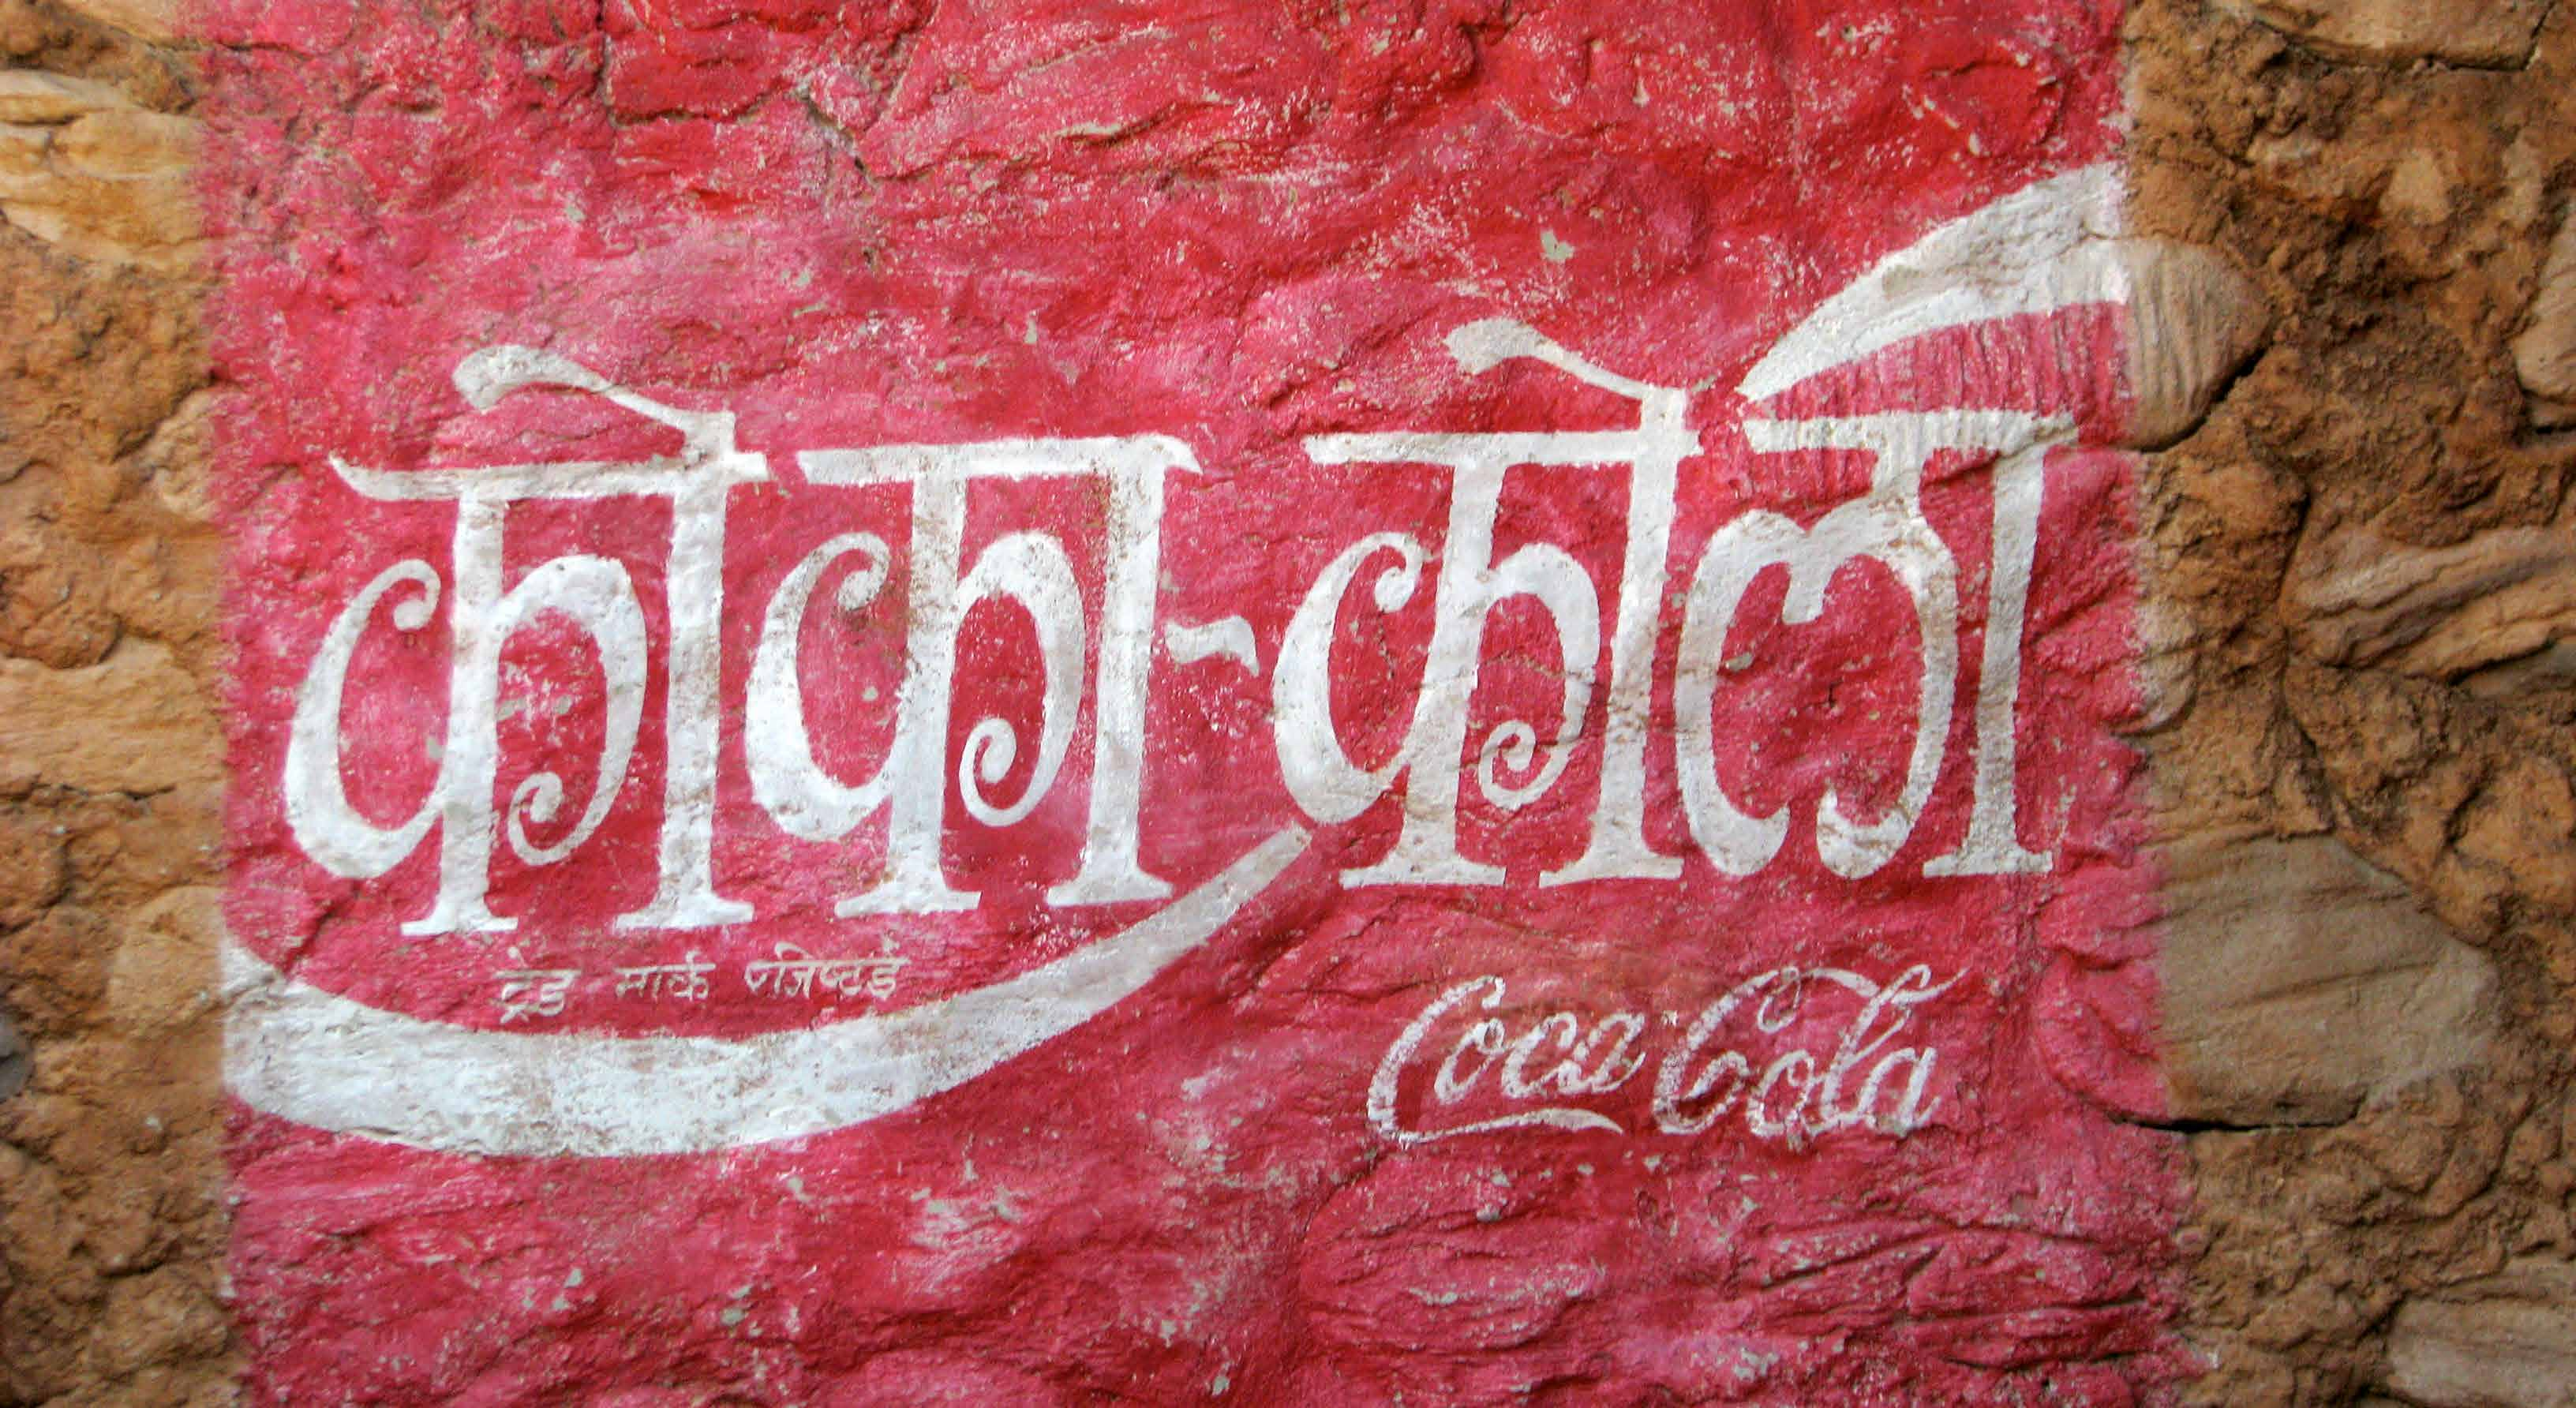 Coca-Cola and Devanagari